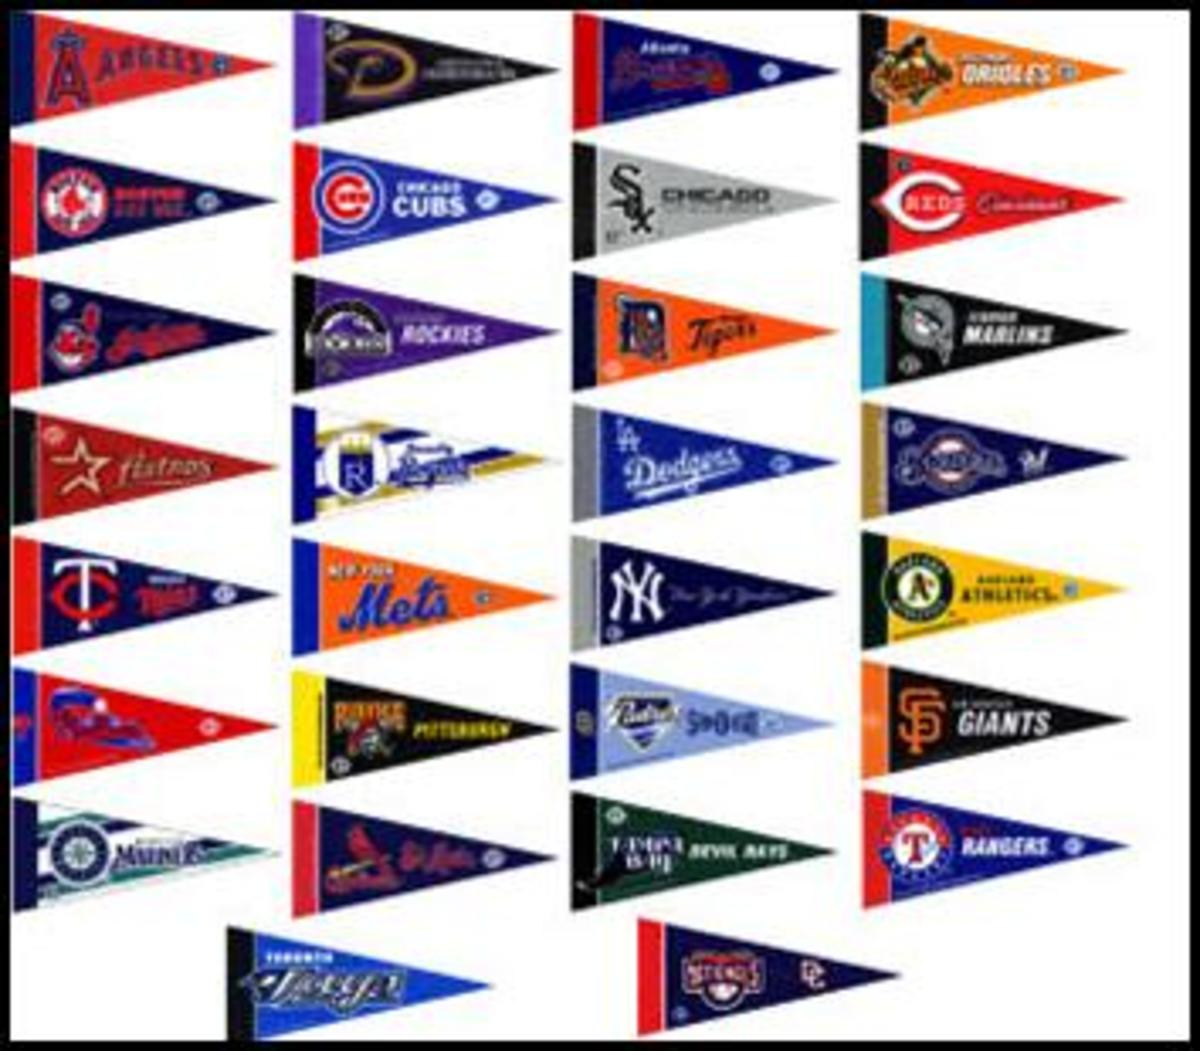 Pennants with team logos.